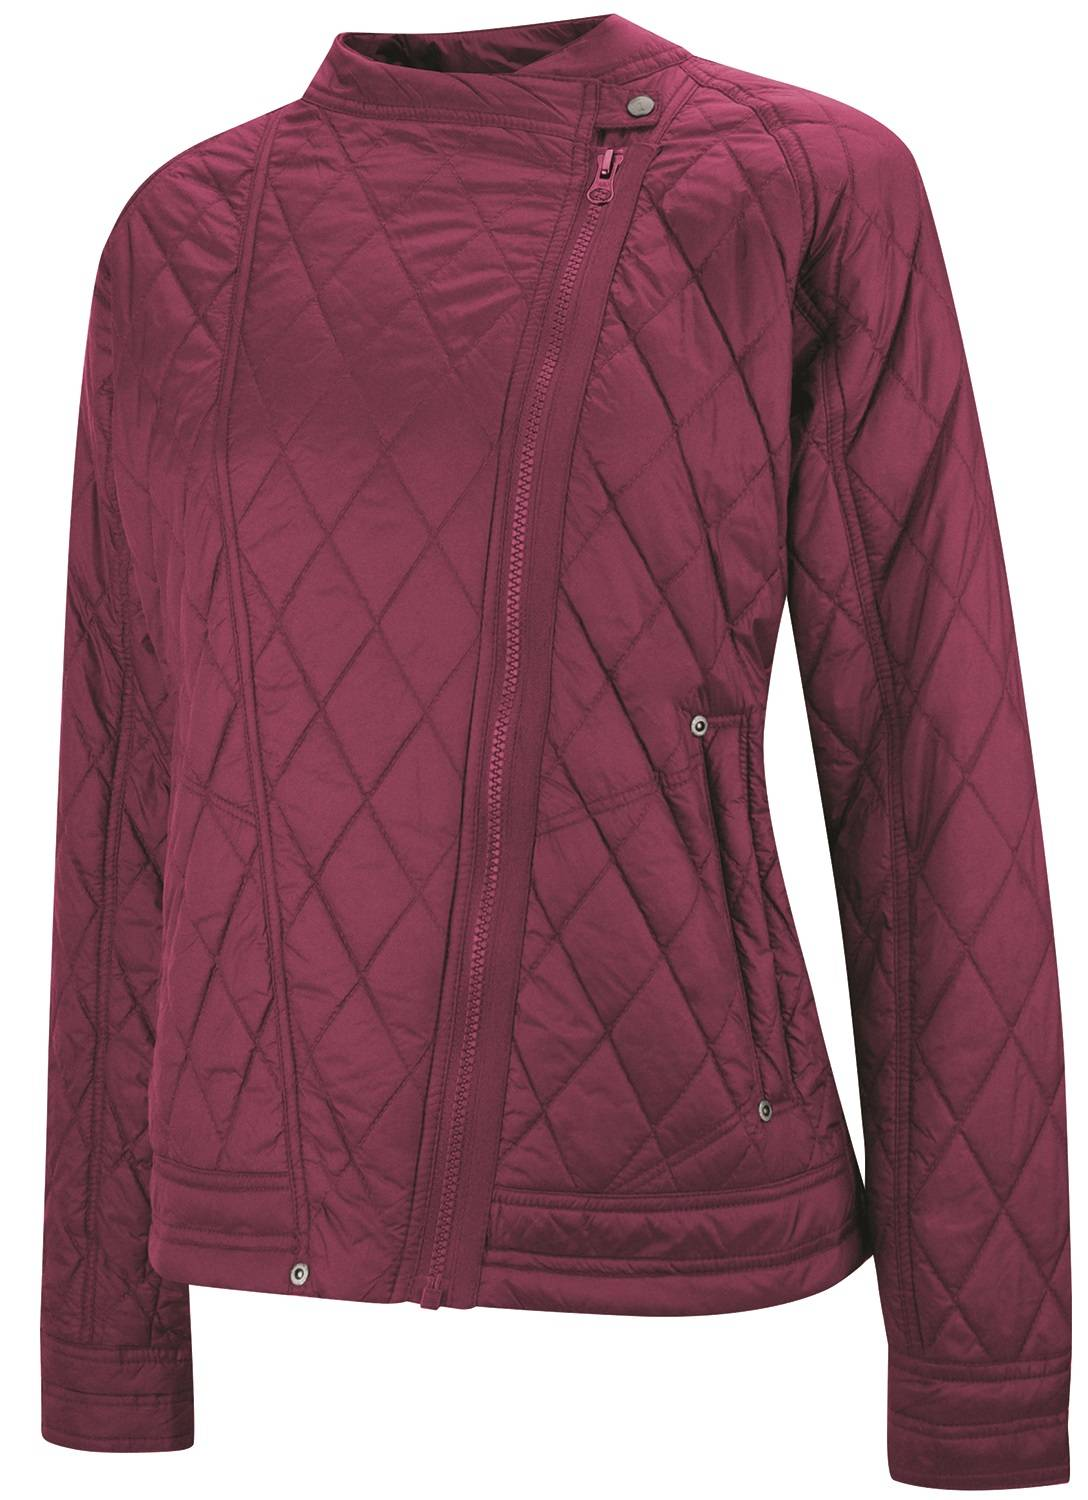 Irideon Ladies' Harley Quilted Jacket